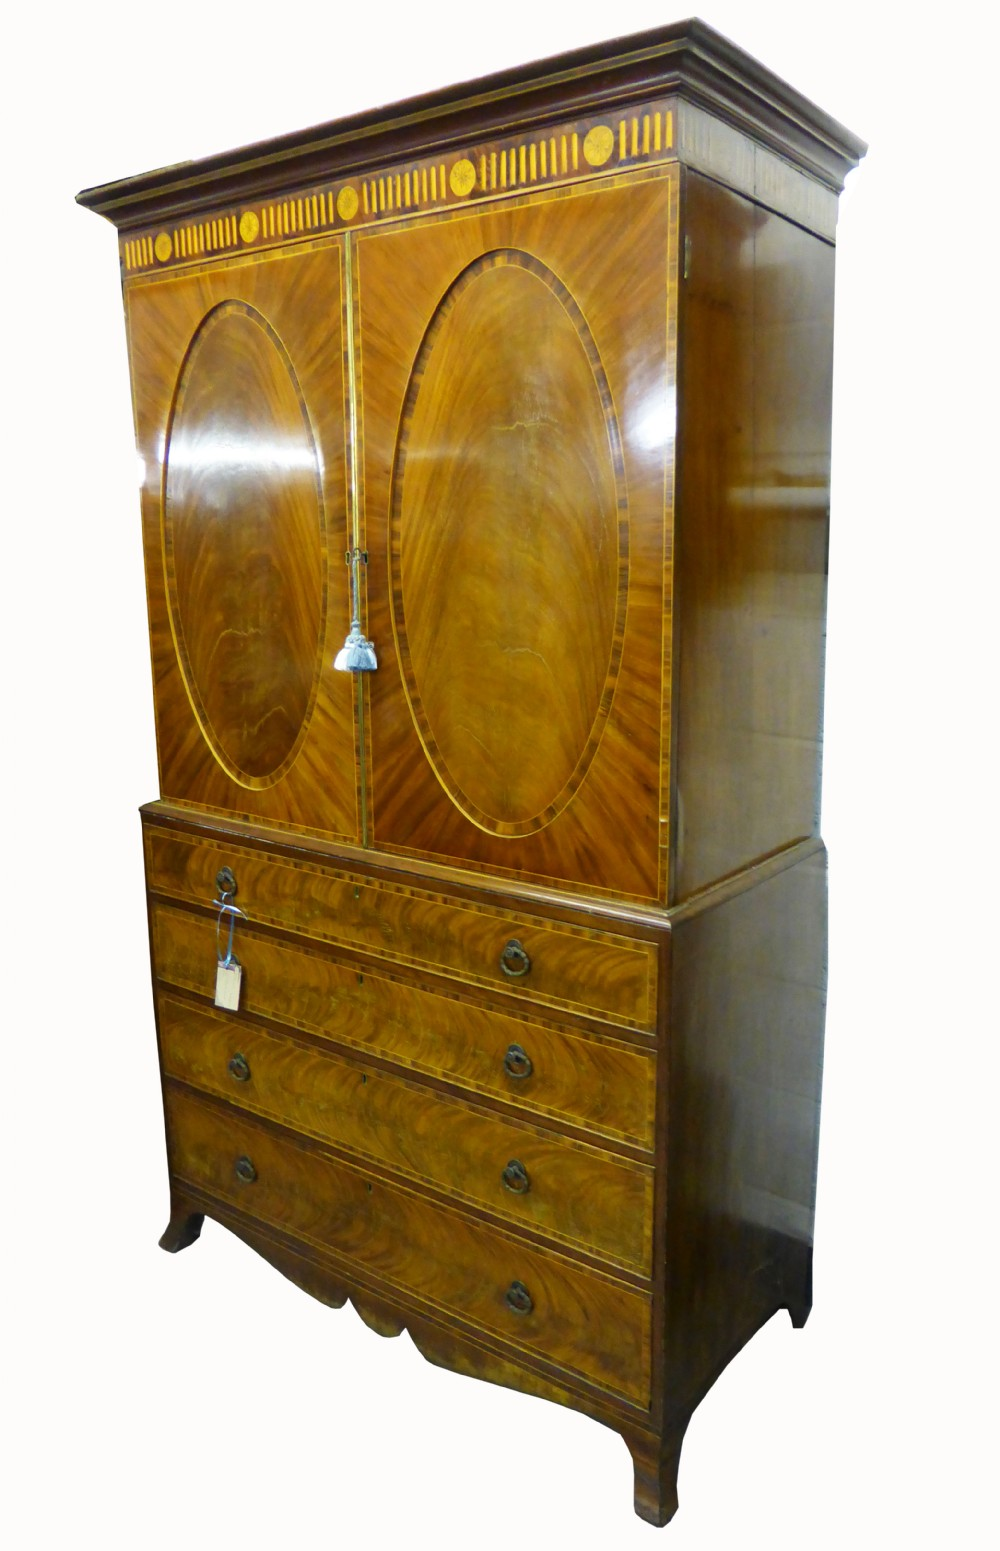 early 19th century mahogany linen press by t wilson of great queen st london